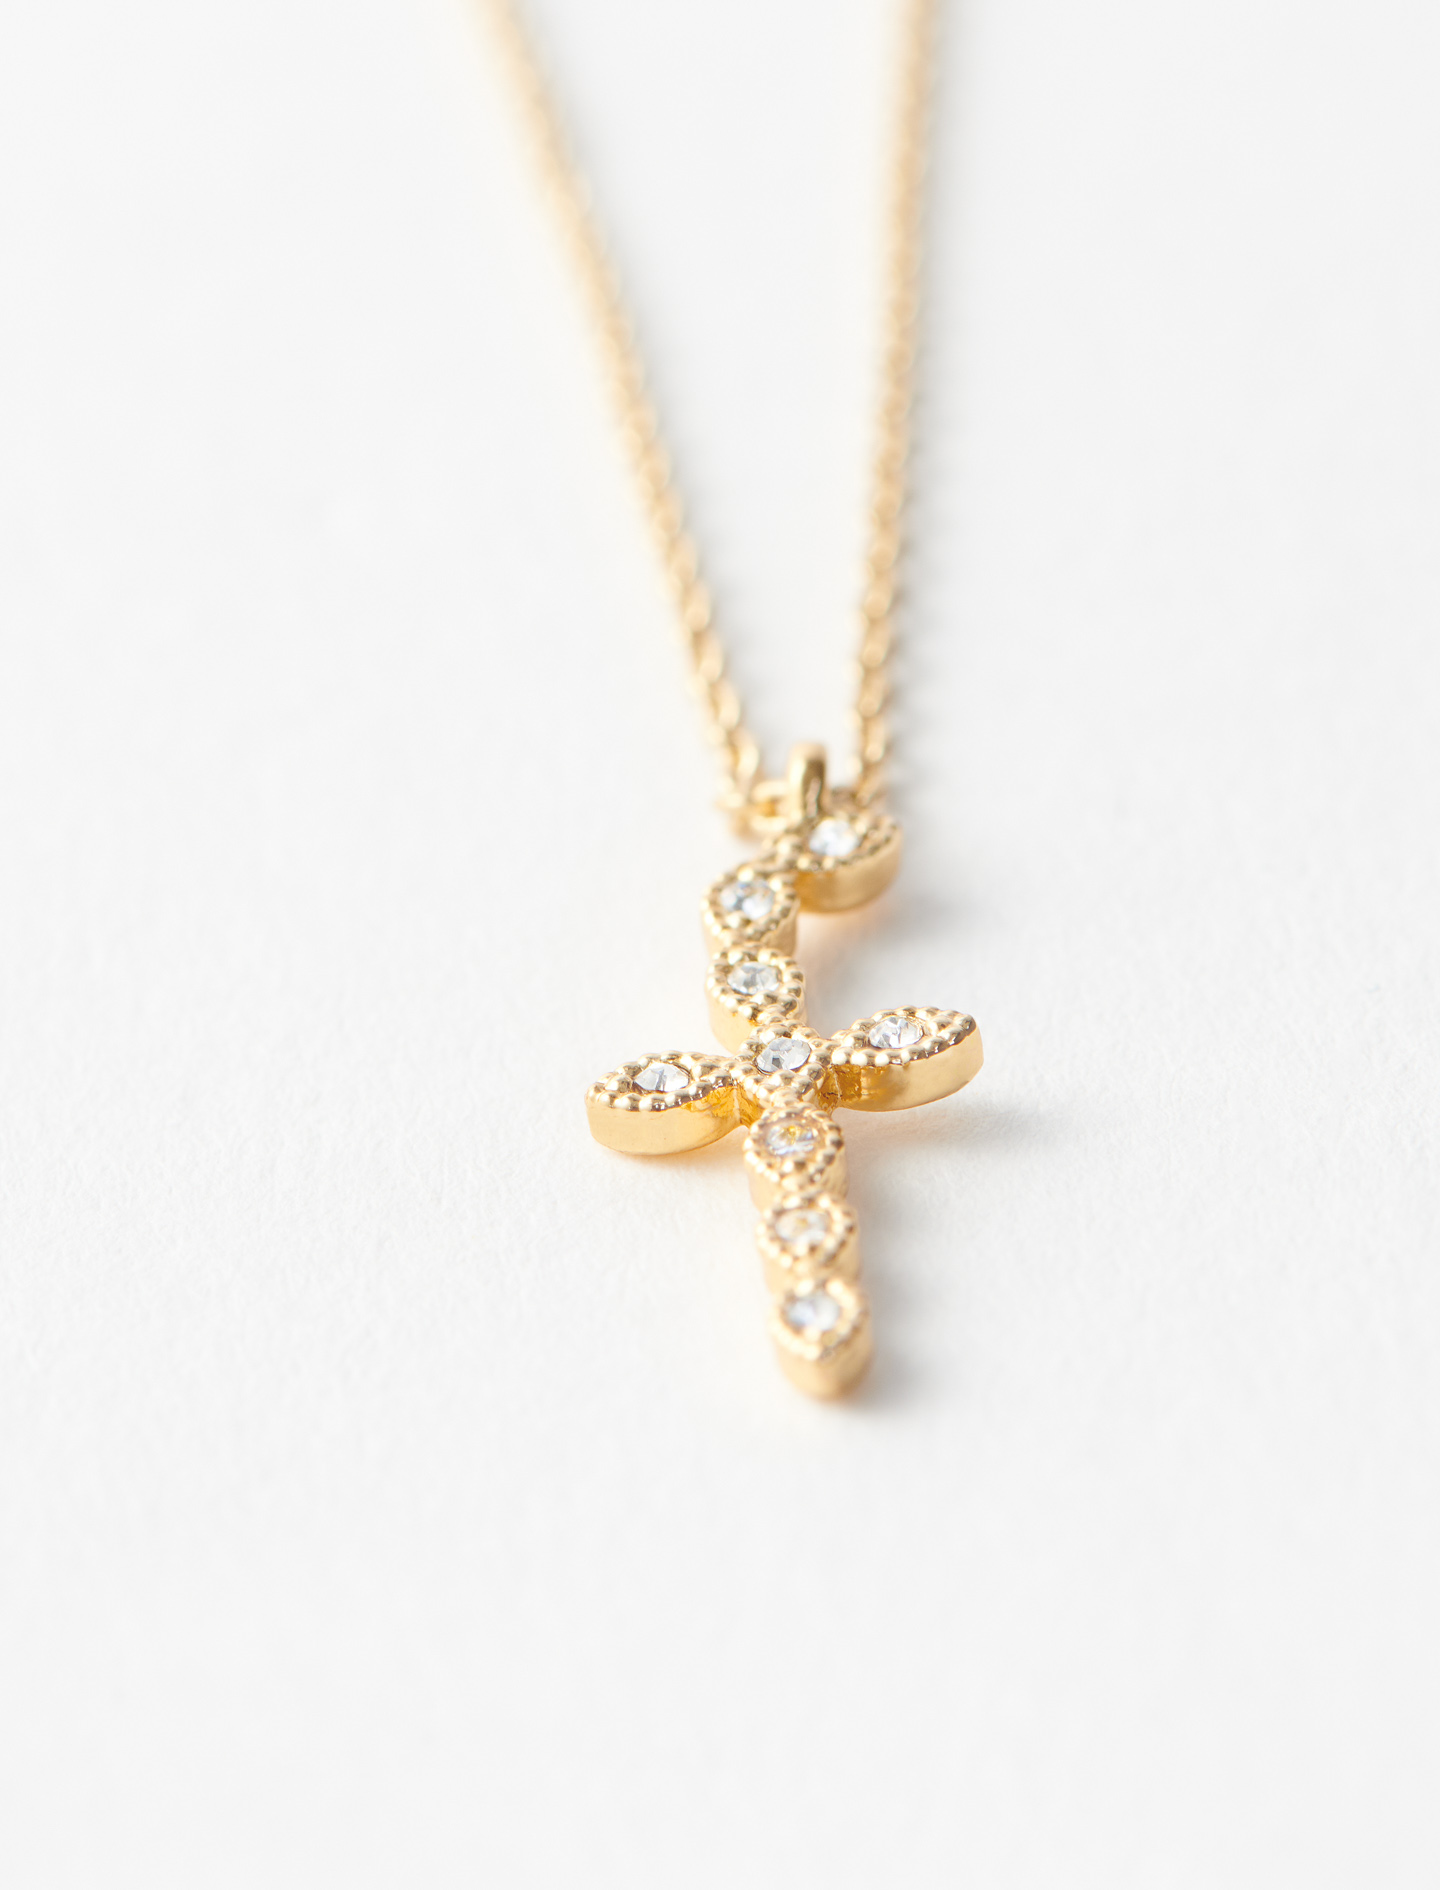 Rhinestone F necklace - Gold